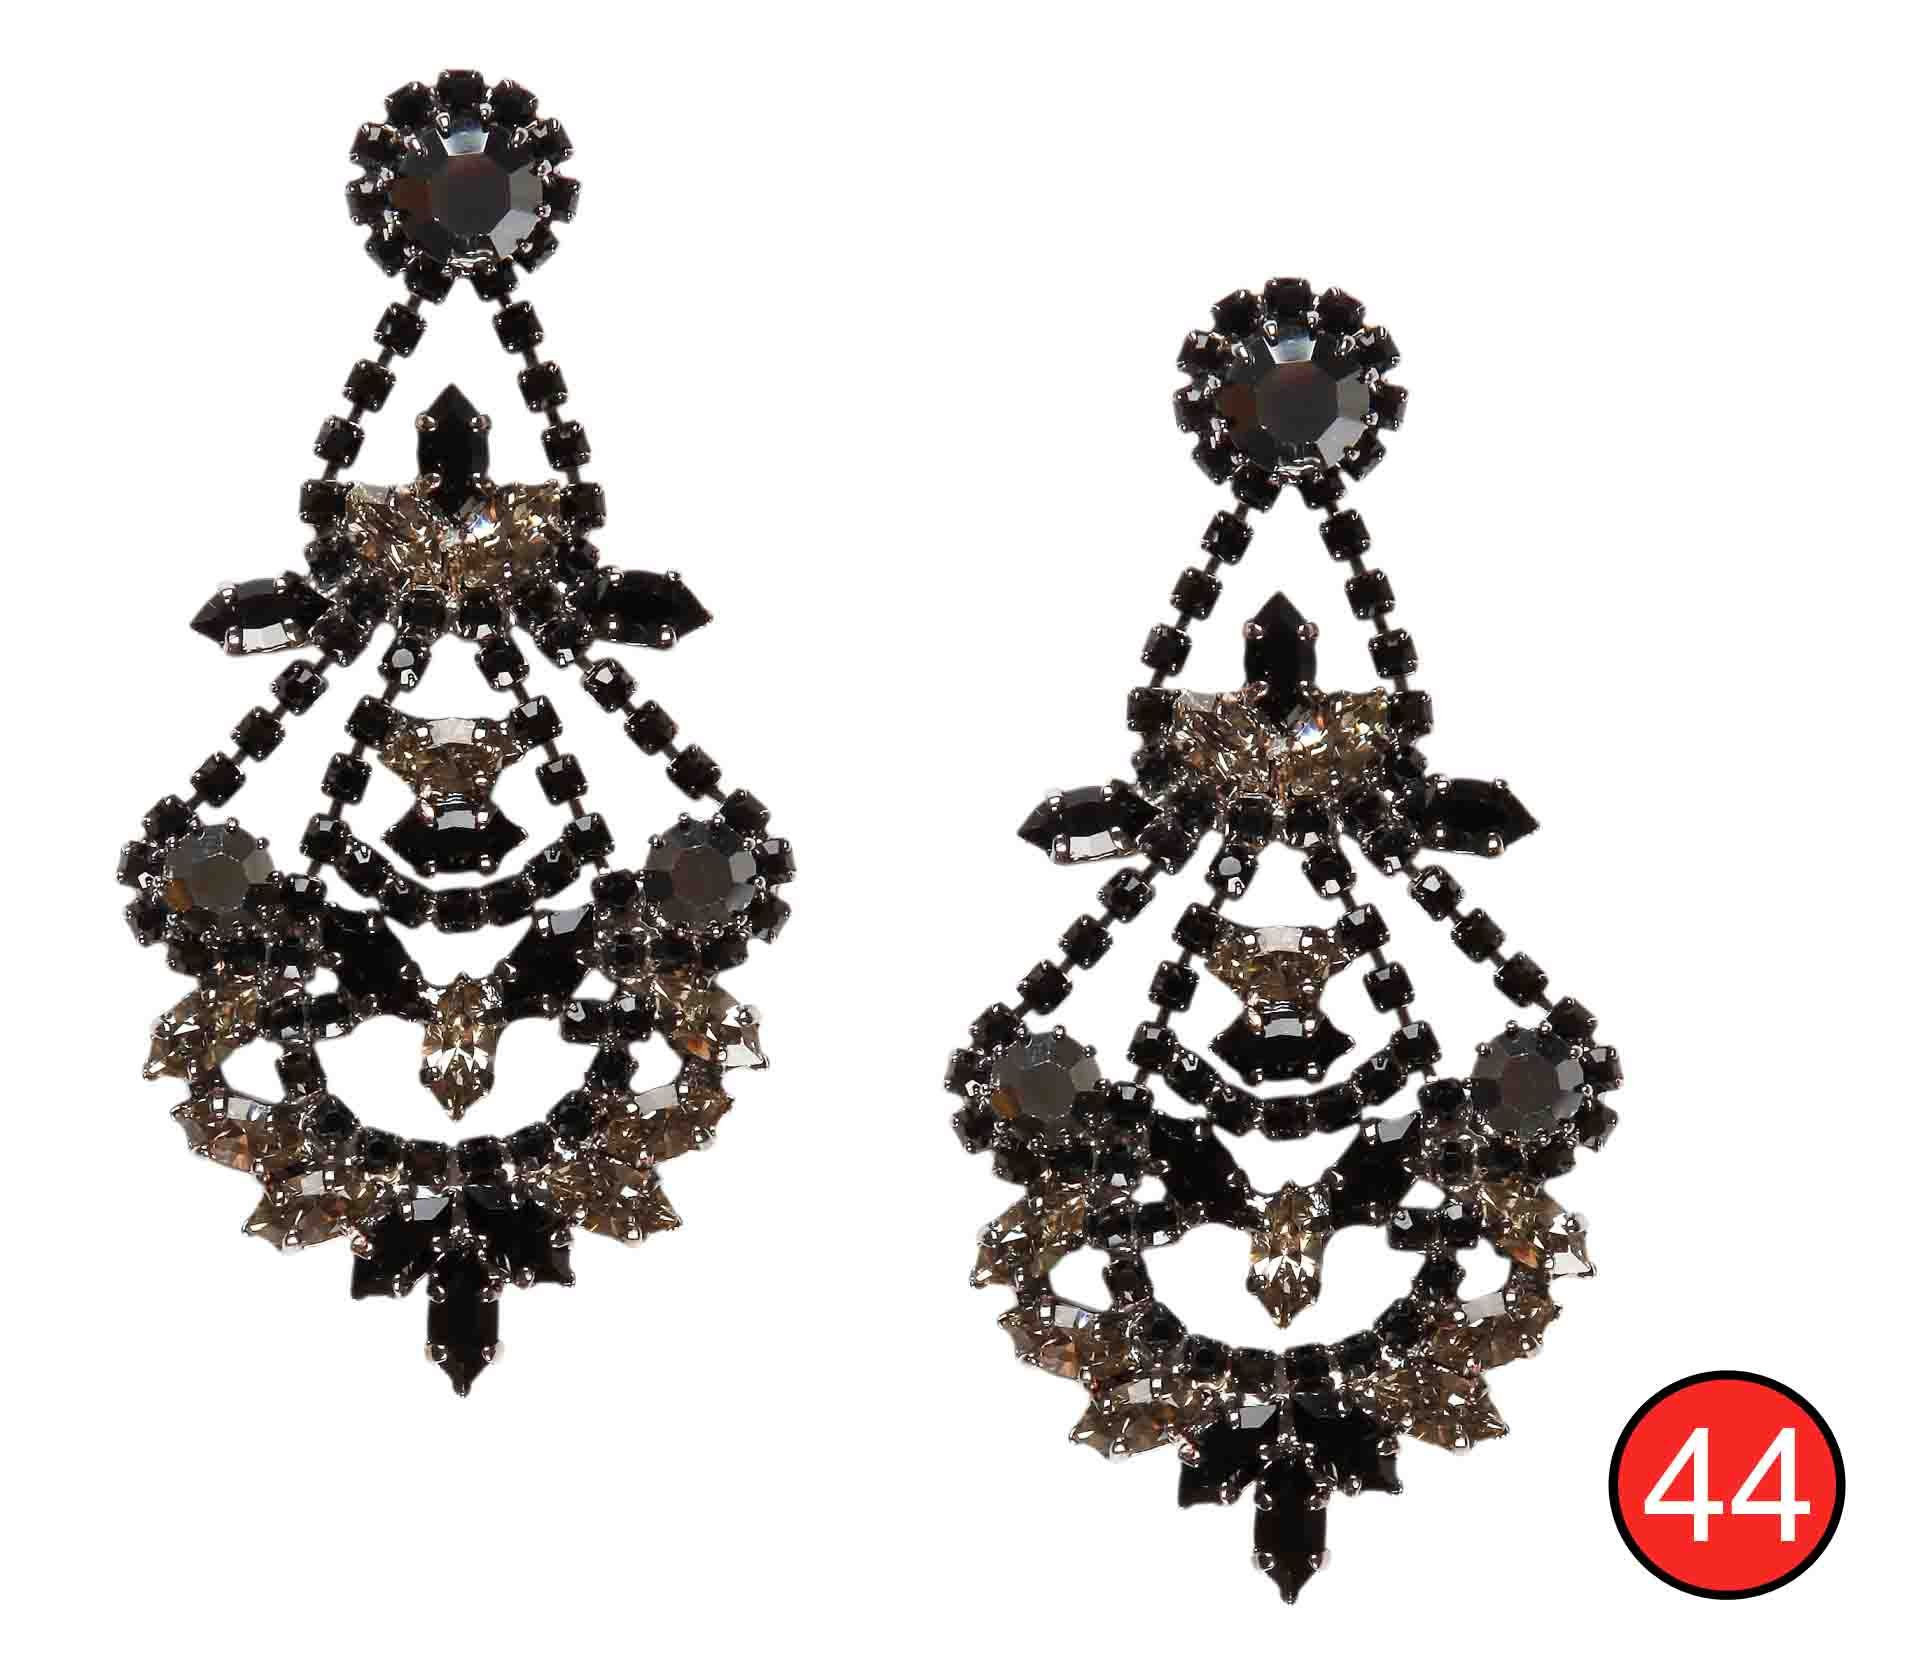 Black large chandelier earrings nextbingo earrings pinterest black large chandelier earrings nextbingo arubaitofo Image collections